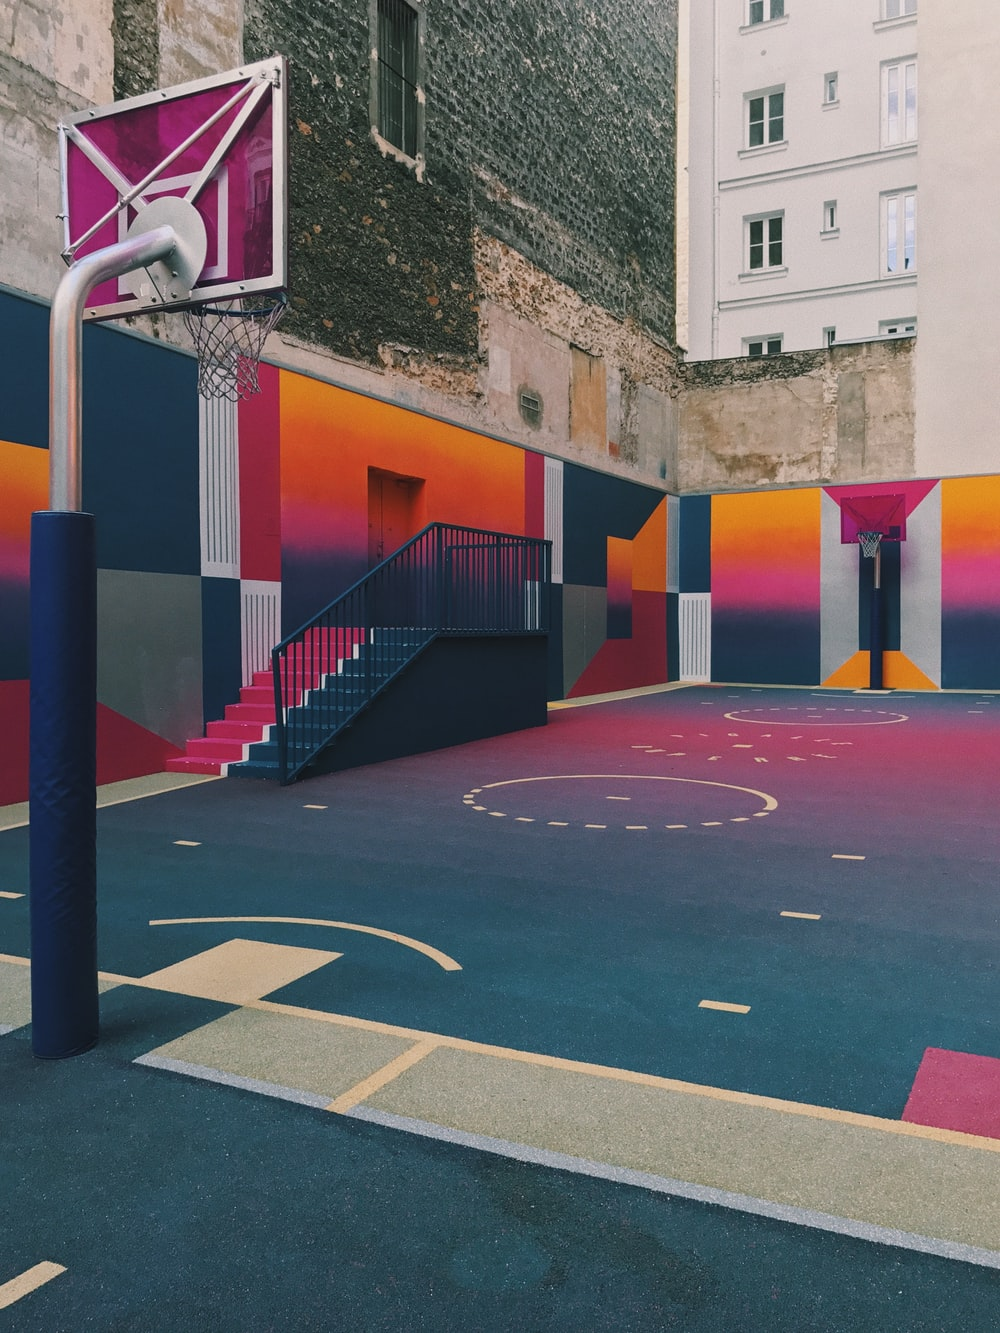 black, purple, and orange basketball court beside concrete buildings at daytime